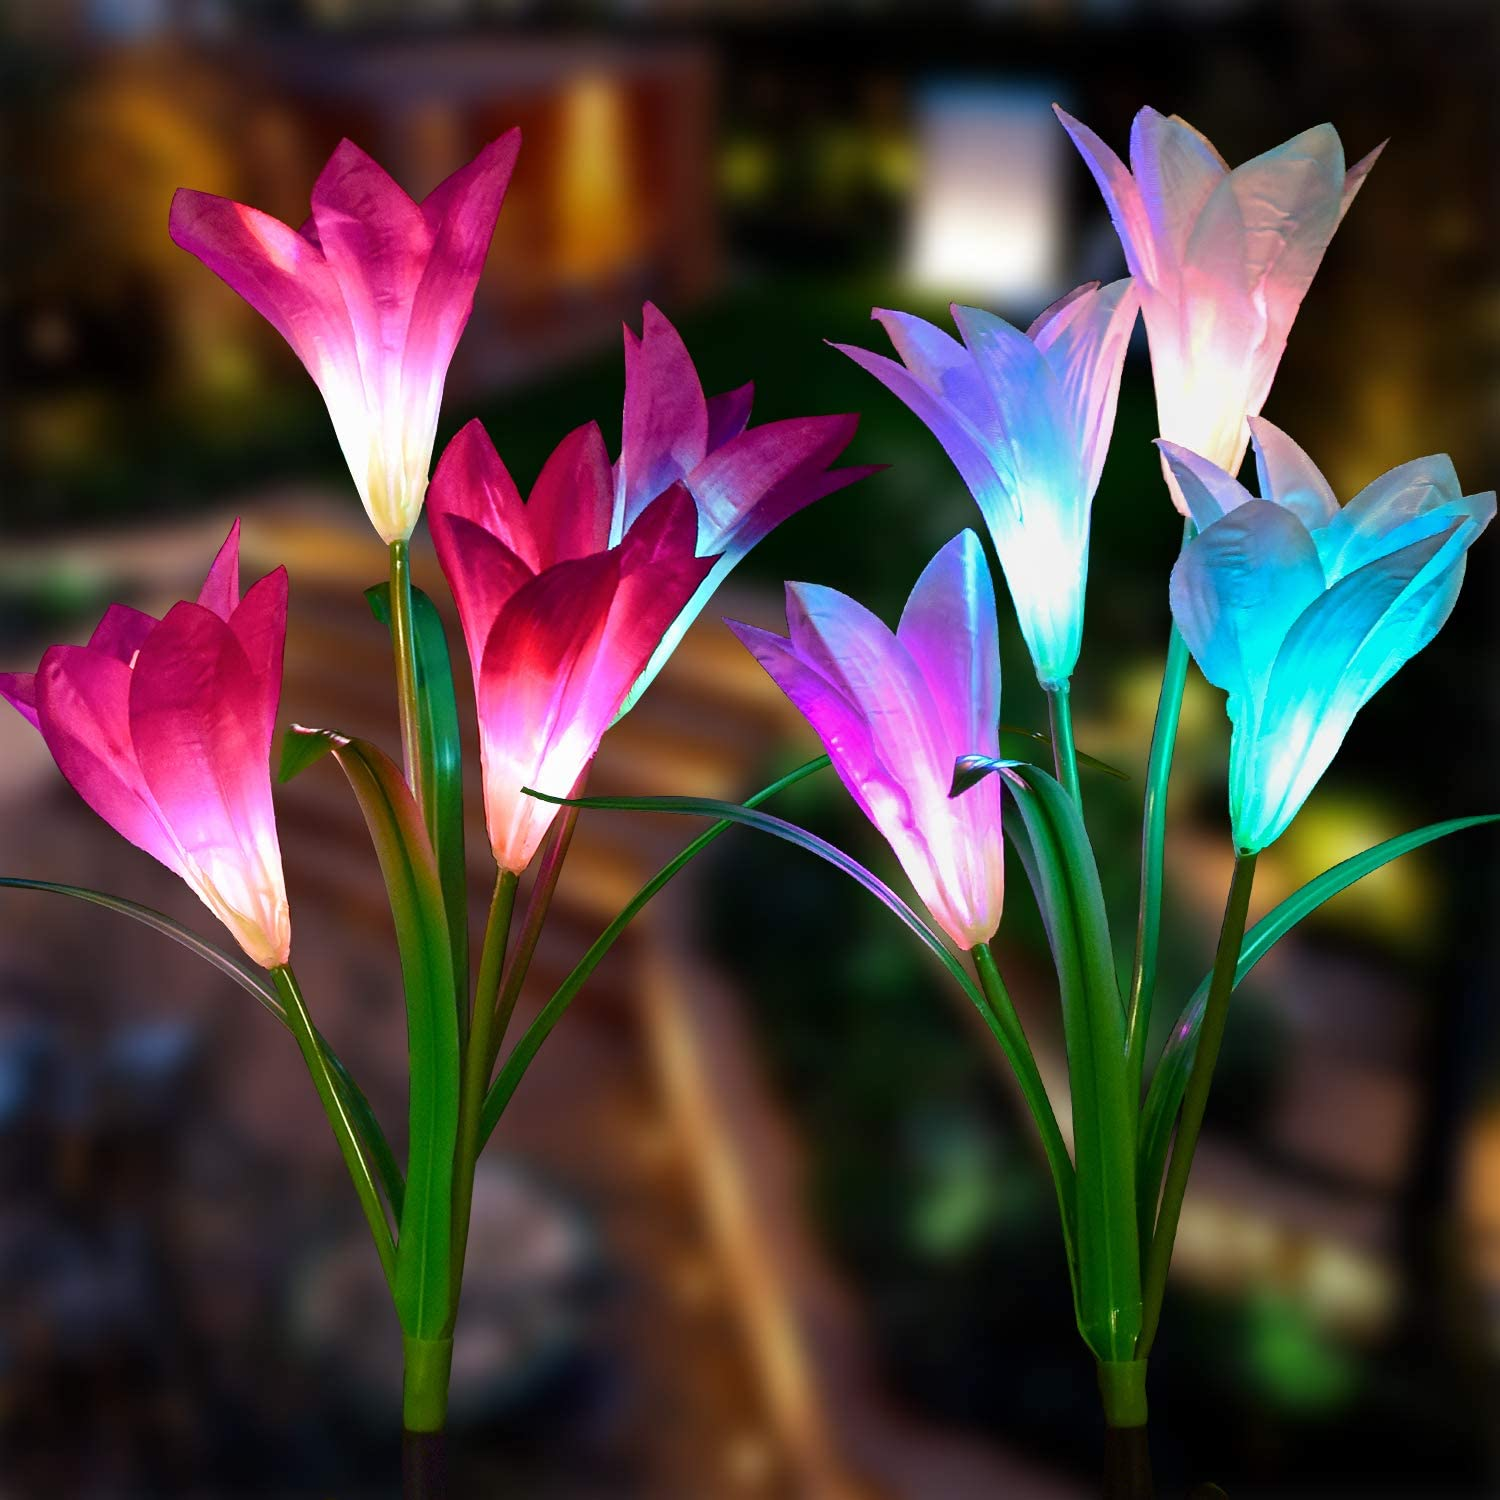 Doingart Solar Lights Outdoor - New Upgraded Solar Garden Lights, Multi-Color Changing Lily Solar Flower Lights for Patio,Yard Decoration, Bigger Flower and Wider Solar Panel (2 Pack,Purple and White)